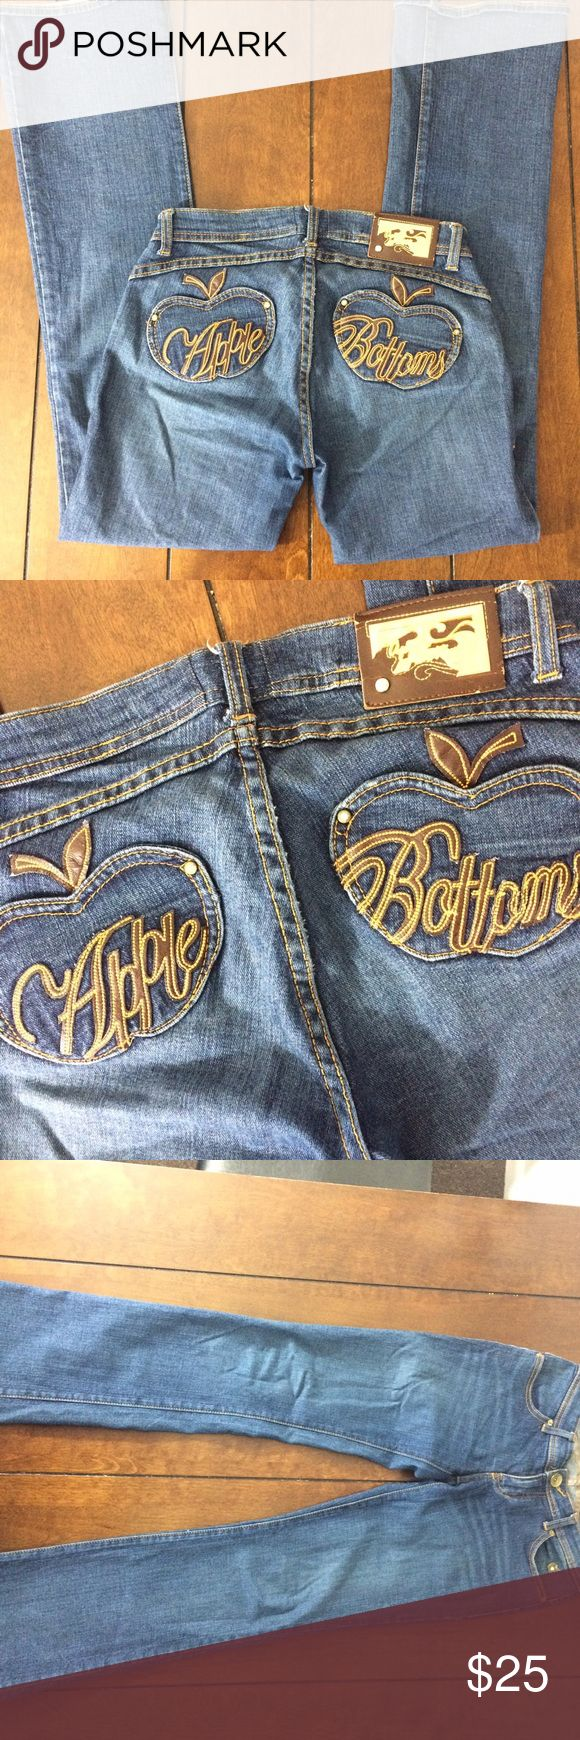 Apple bottom stretch jeans Woman's size 30 (there is no size tag---I measured) Apple bottom jeans. Some wear. No holes no stains. Waist measures 15 inches flat across, inseam is 32 inches and rise is 7 1/2 inches. Apple Bottoms Jeans Boot Cut